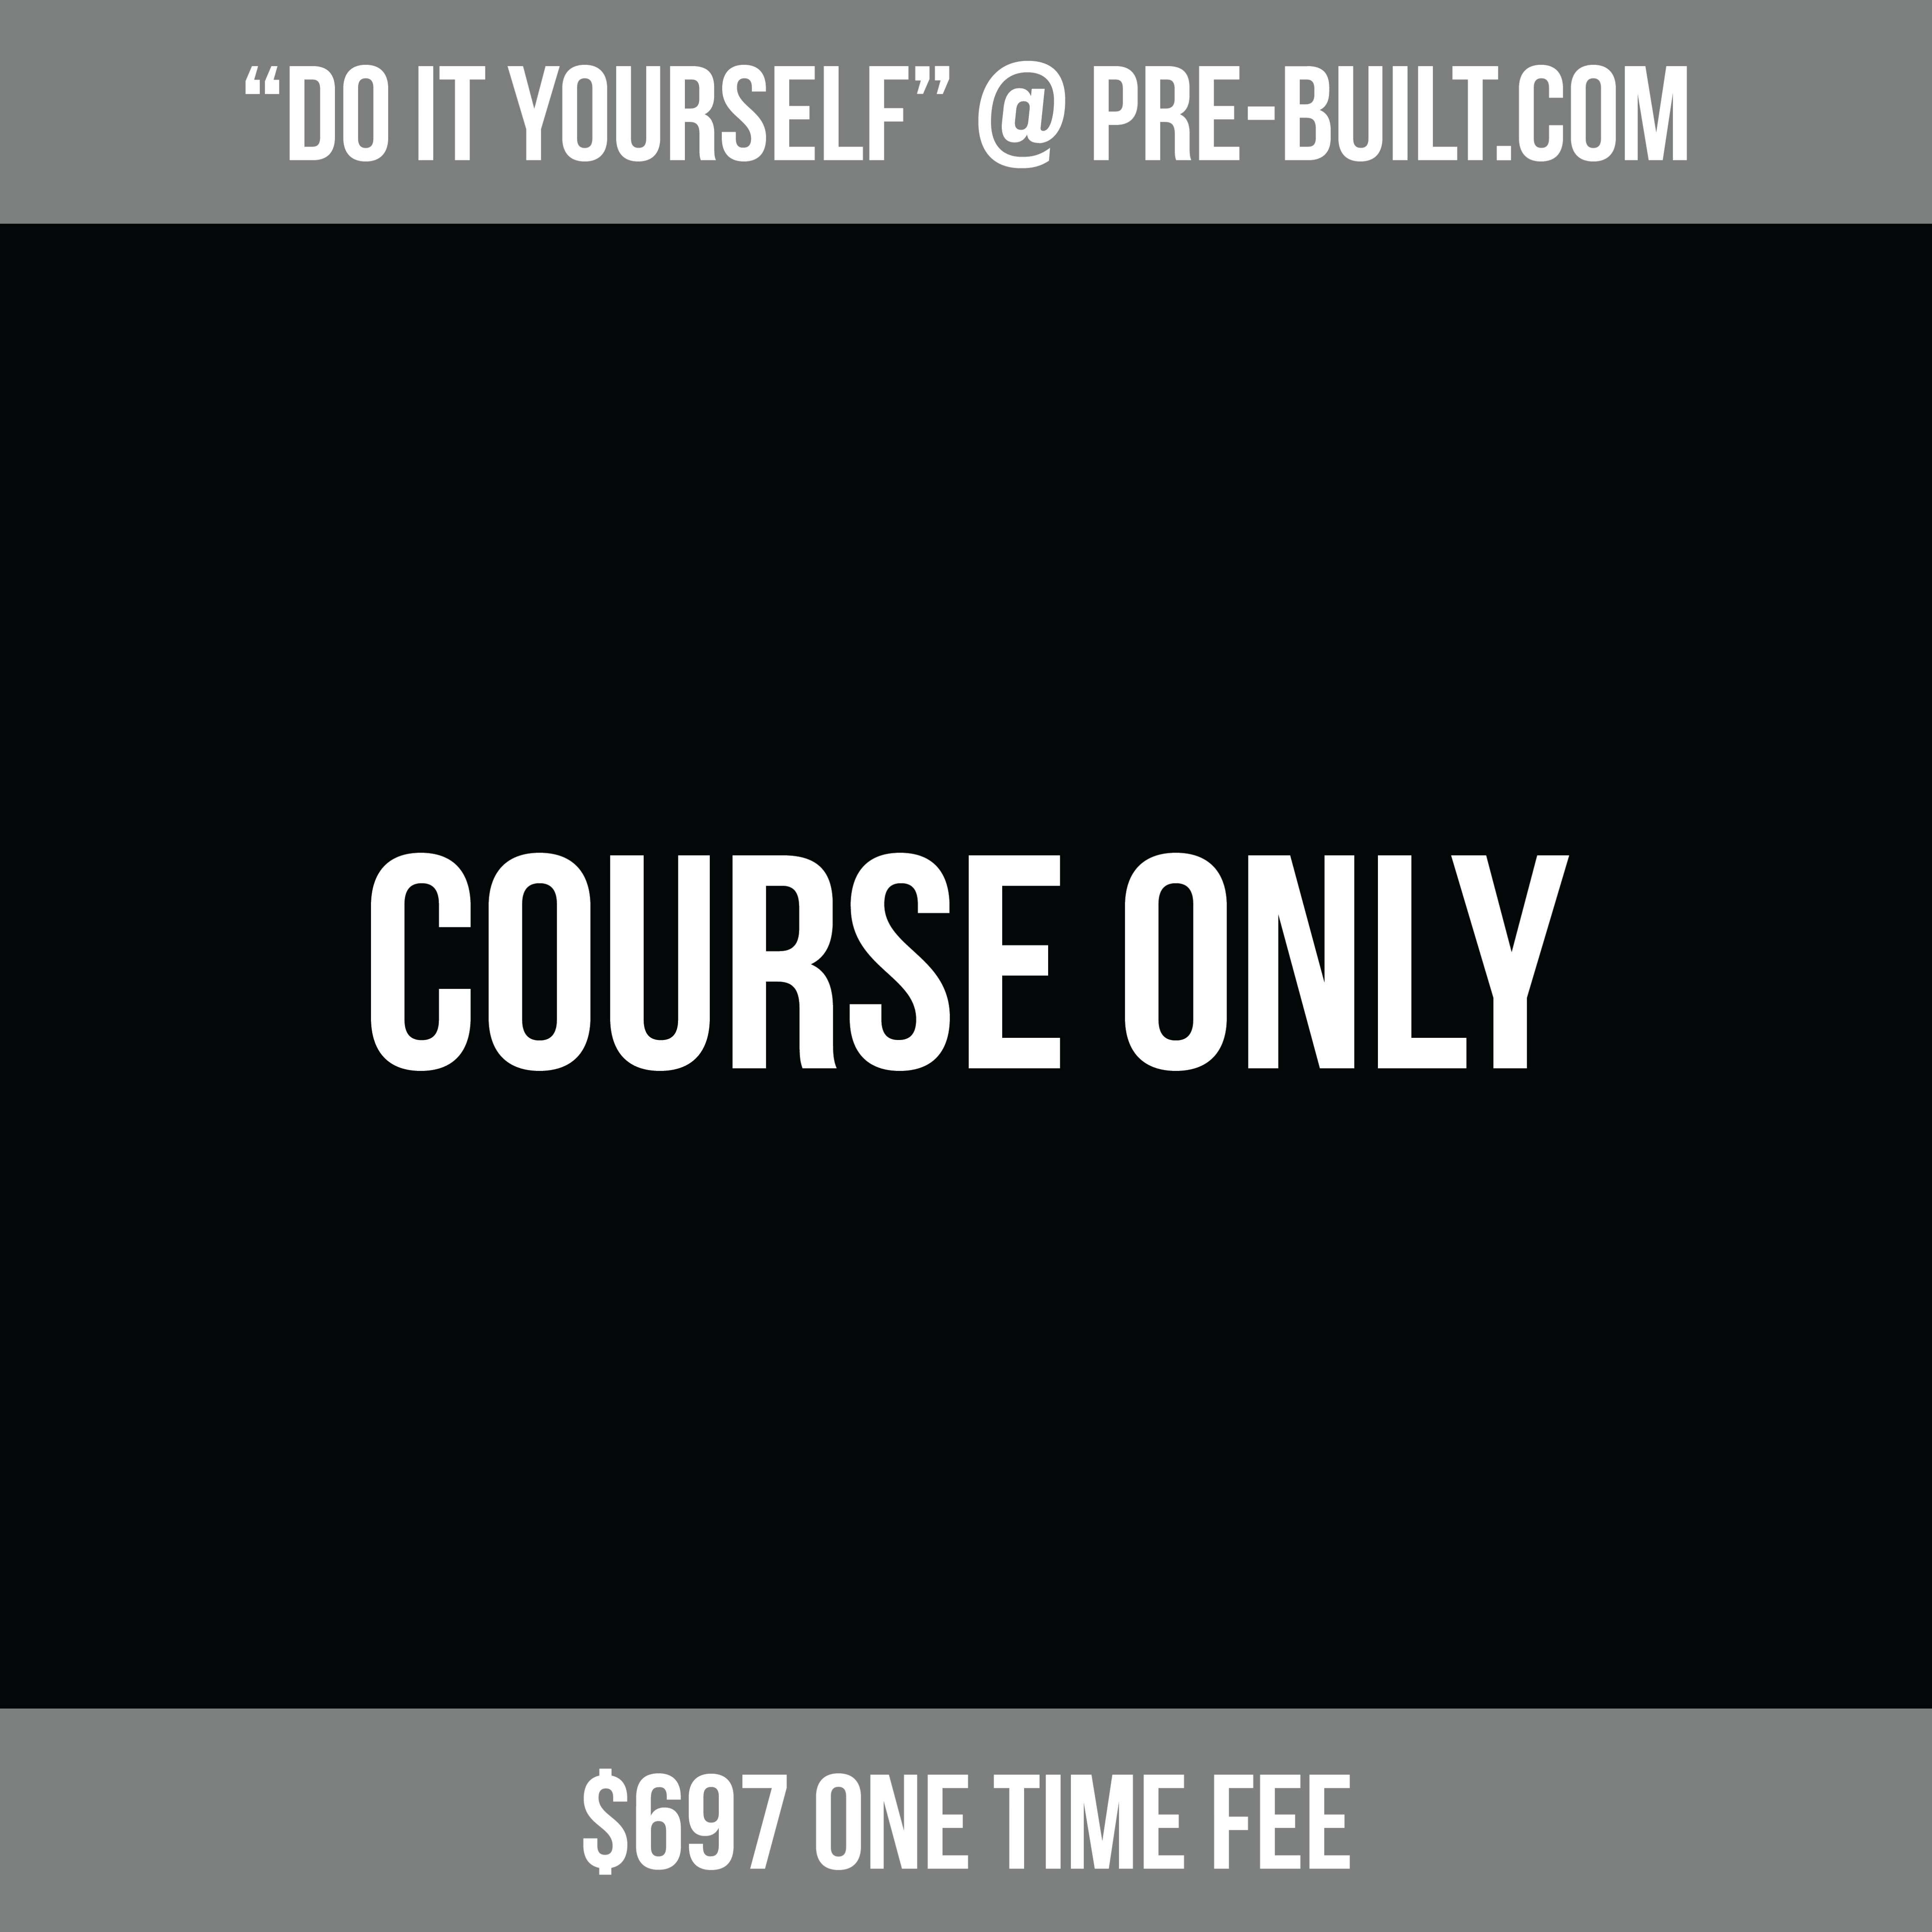 COURSE ONLY